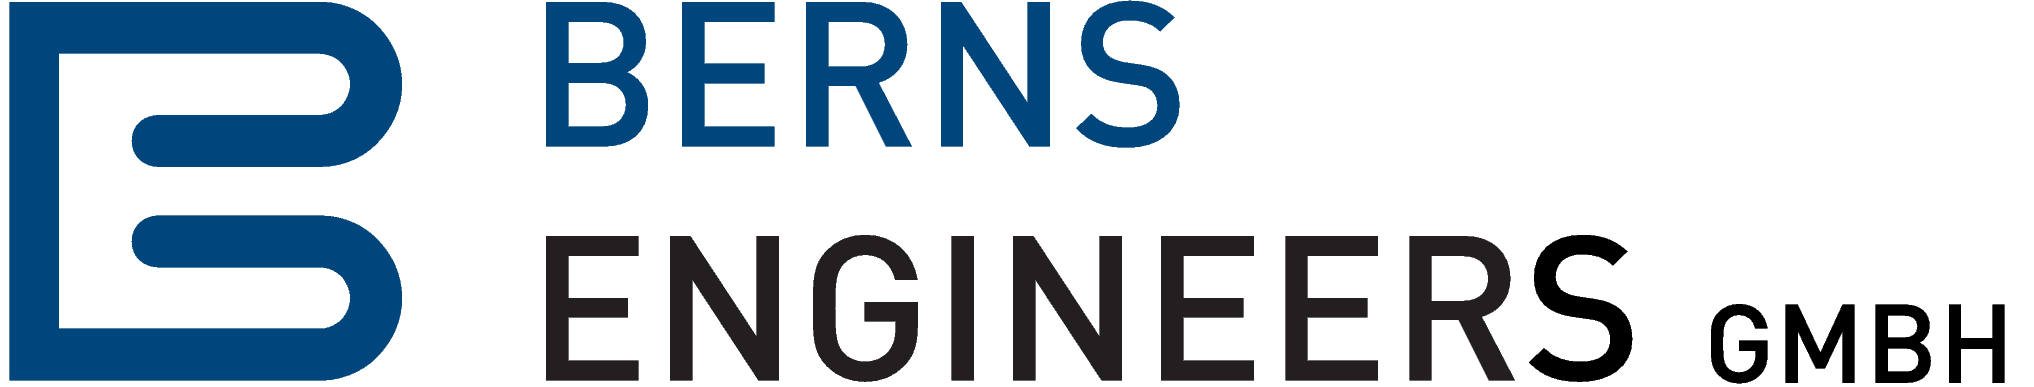 Logo der BERNS Engineers GmbH